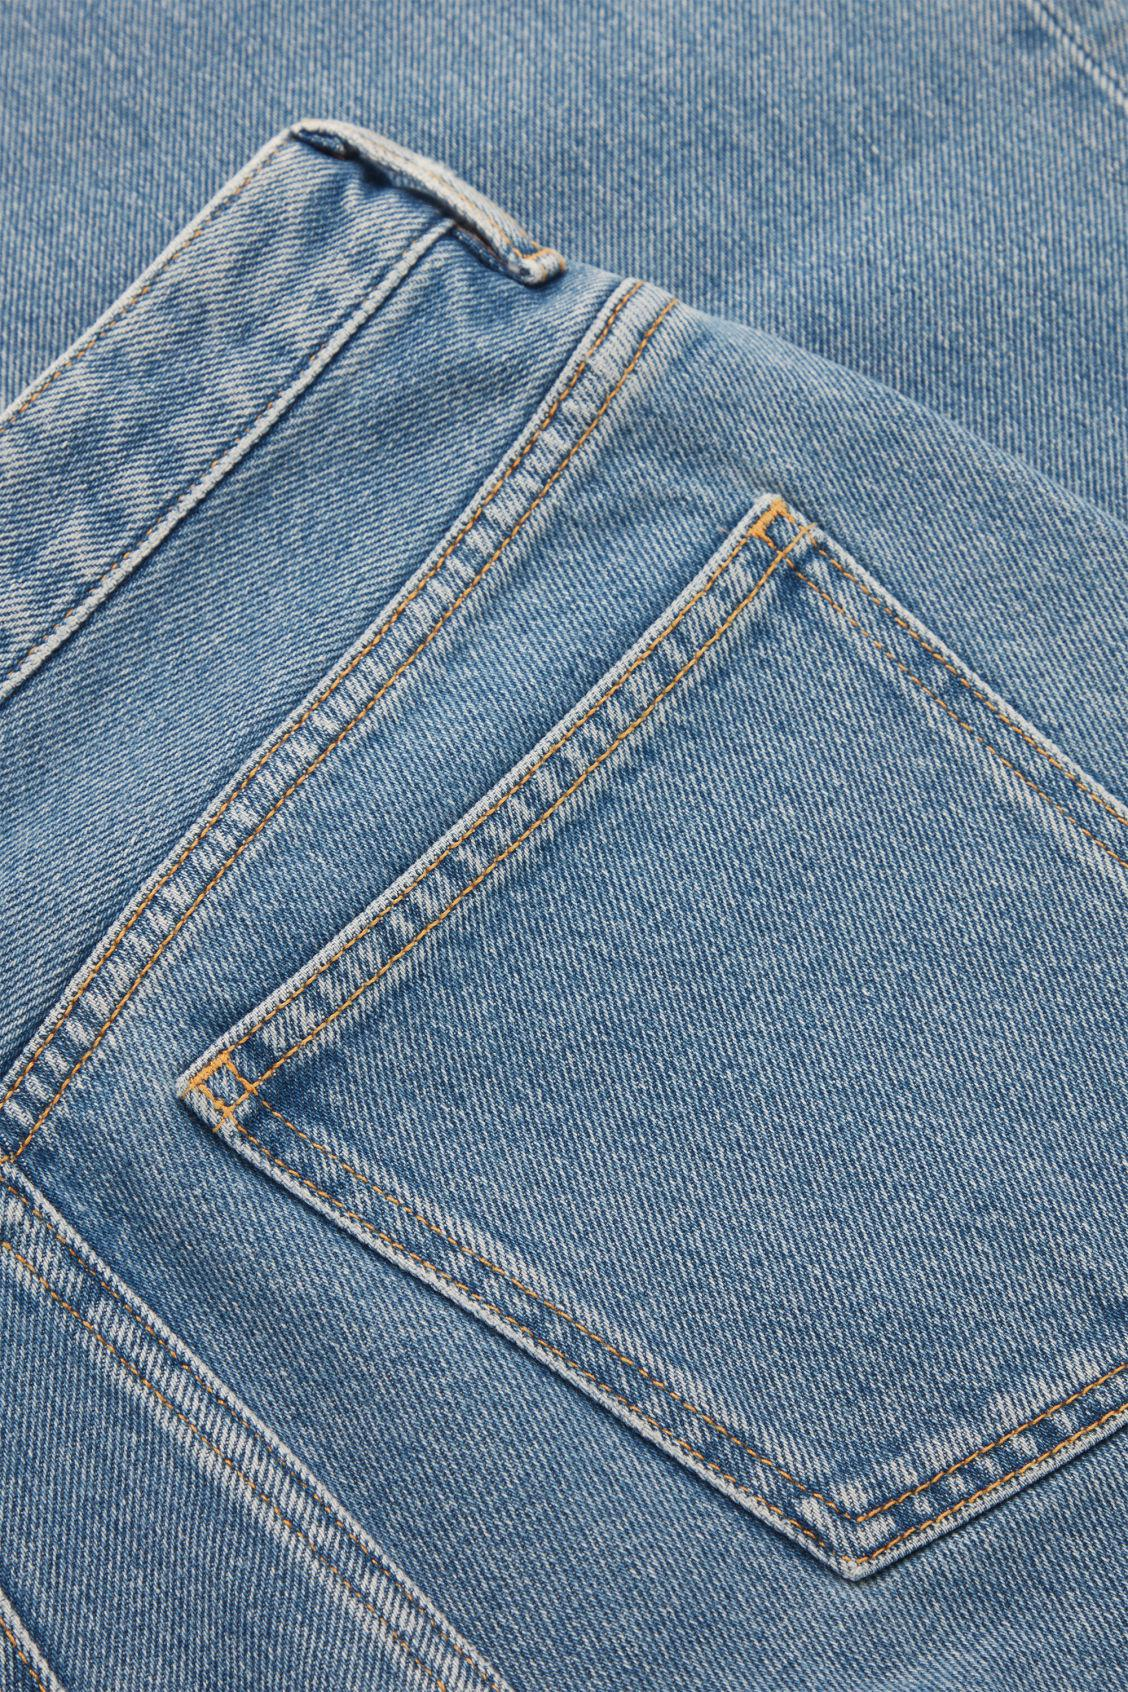 TAPERED HIGH-RISE JEANS 8